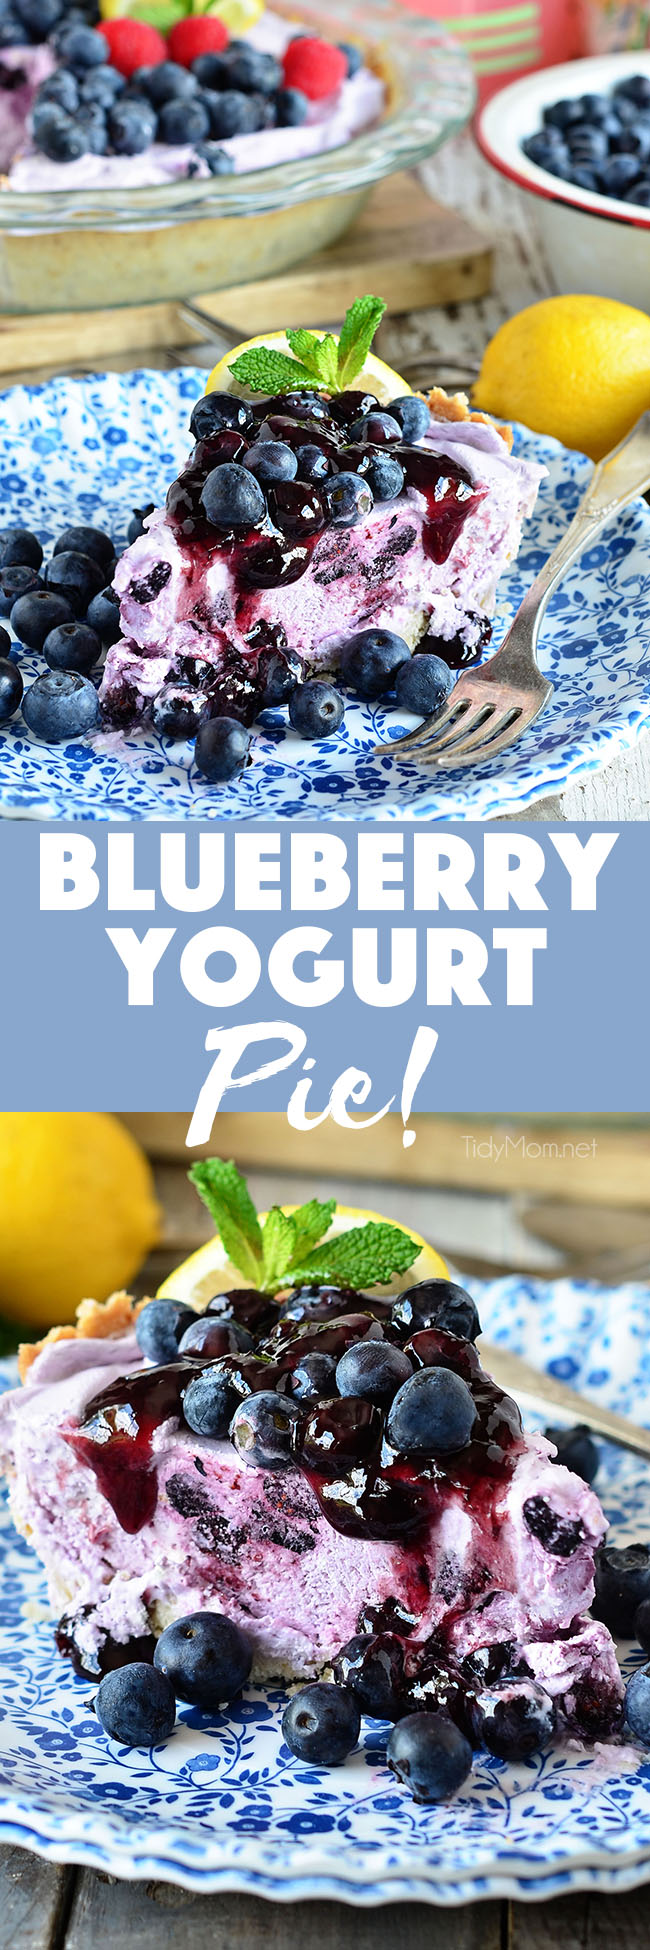 Blueberry Yogurt Pie is the perfect dessert for summer, or any time of year! A simple lemon shortbread crust filled with creamy yogurt, whipped topping and blueberries is topped off with lemon blueberry fruit spread. Serve Blueberry Yogurt Pie frozen or cold, either way it wont last long! In a hurry? use a store bought ready-made shortbread crust and have this pie in the freezer in 5 minutes! recipe at TidyMom.net